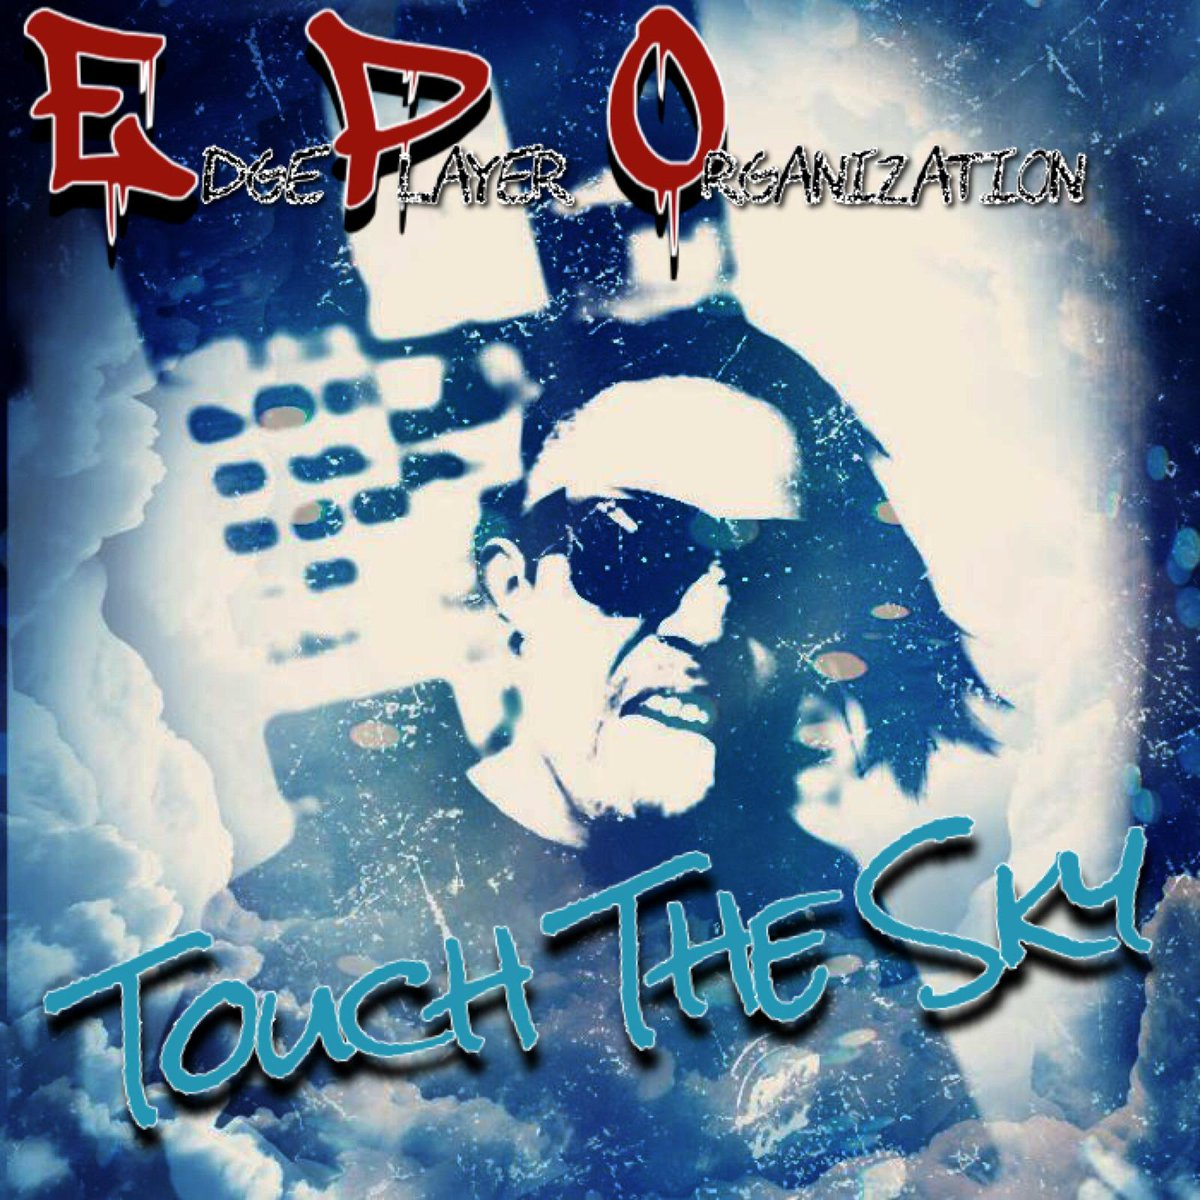 拡散希望!@ep_organization  Bro Hi(ex.SOUL'd OUT)の Edge Player    Organizationの1StシングルiTMSで配信開始!http://t.co/QTMrmyU3Kt http://t.co/11RMXWhB5f